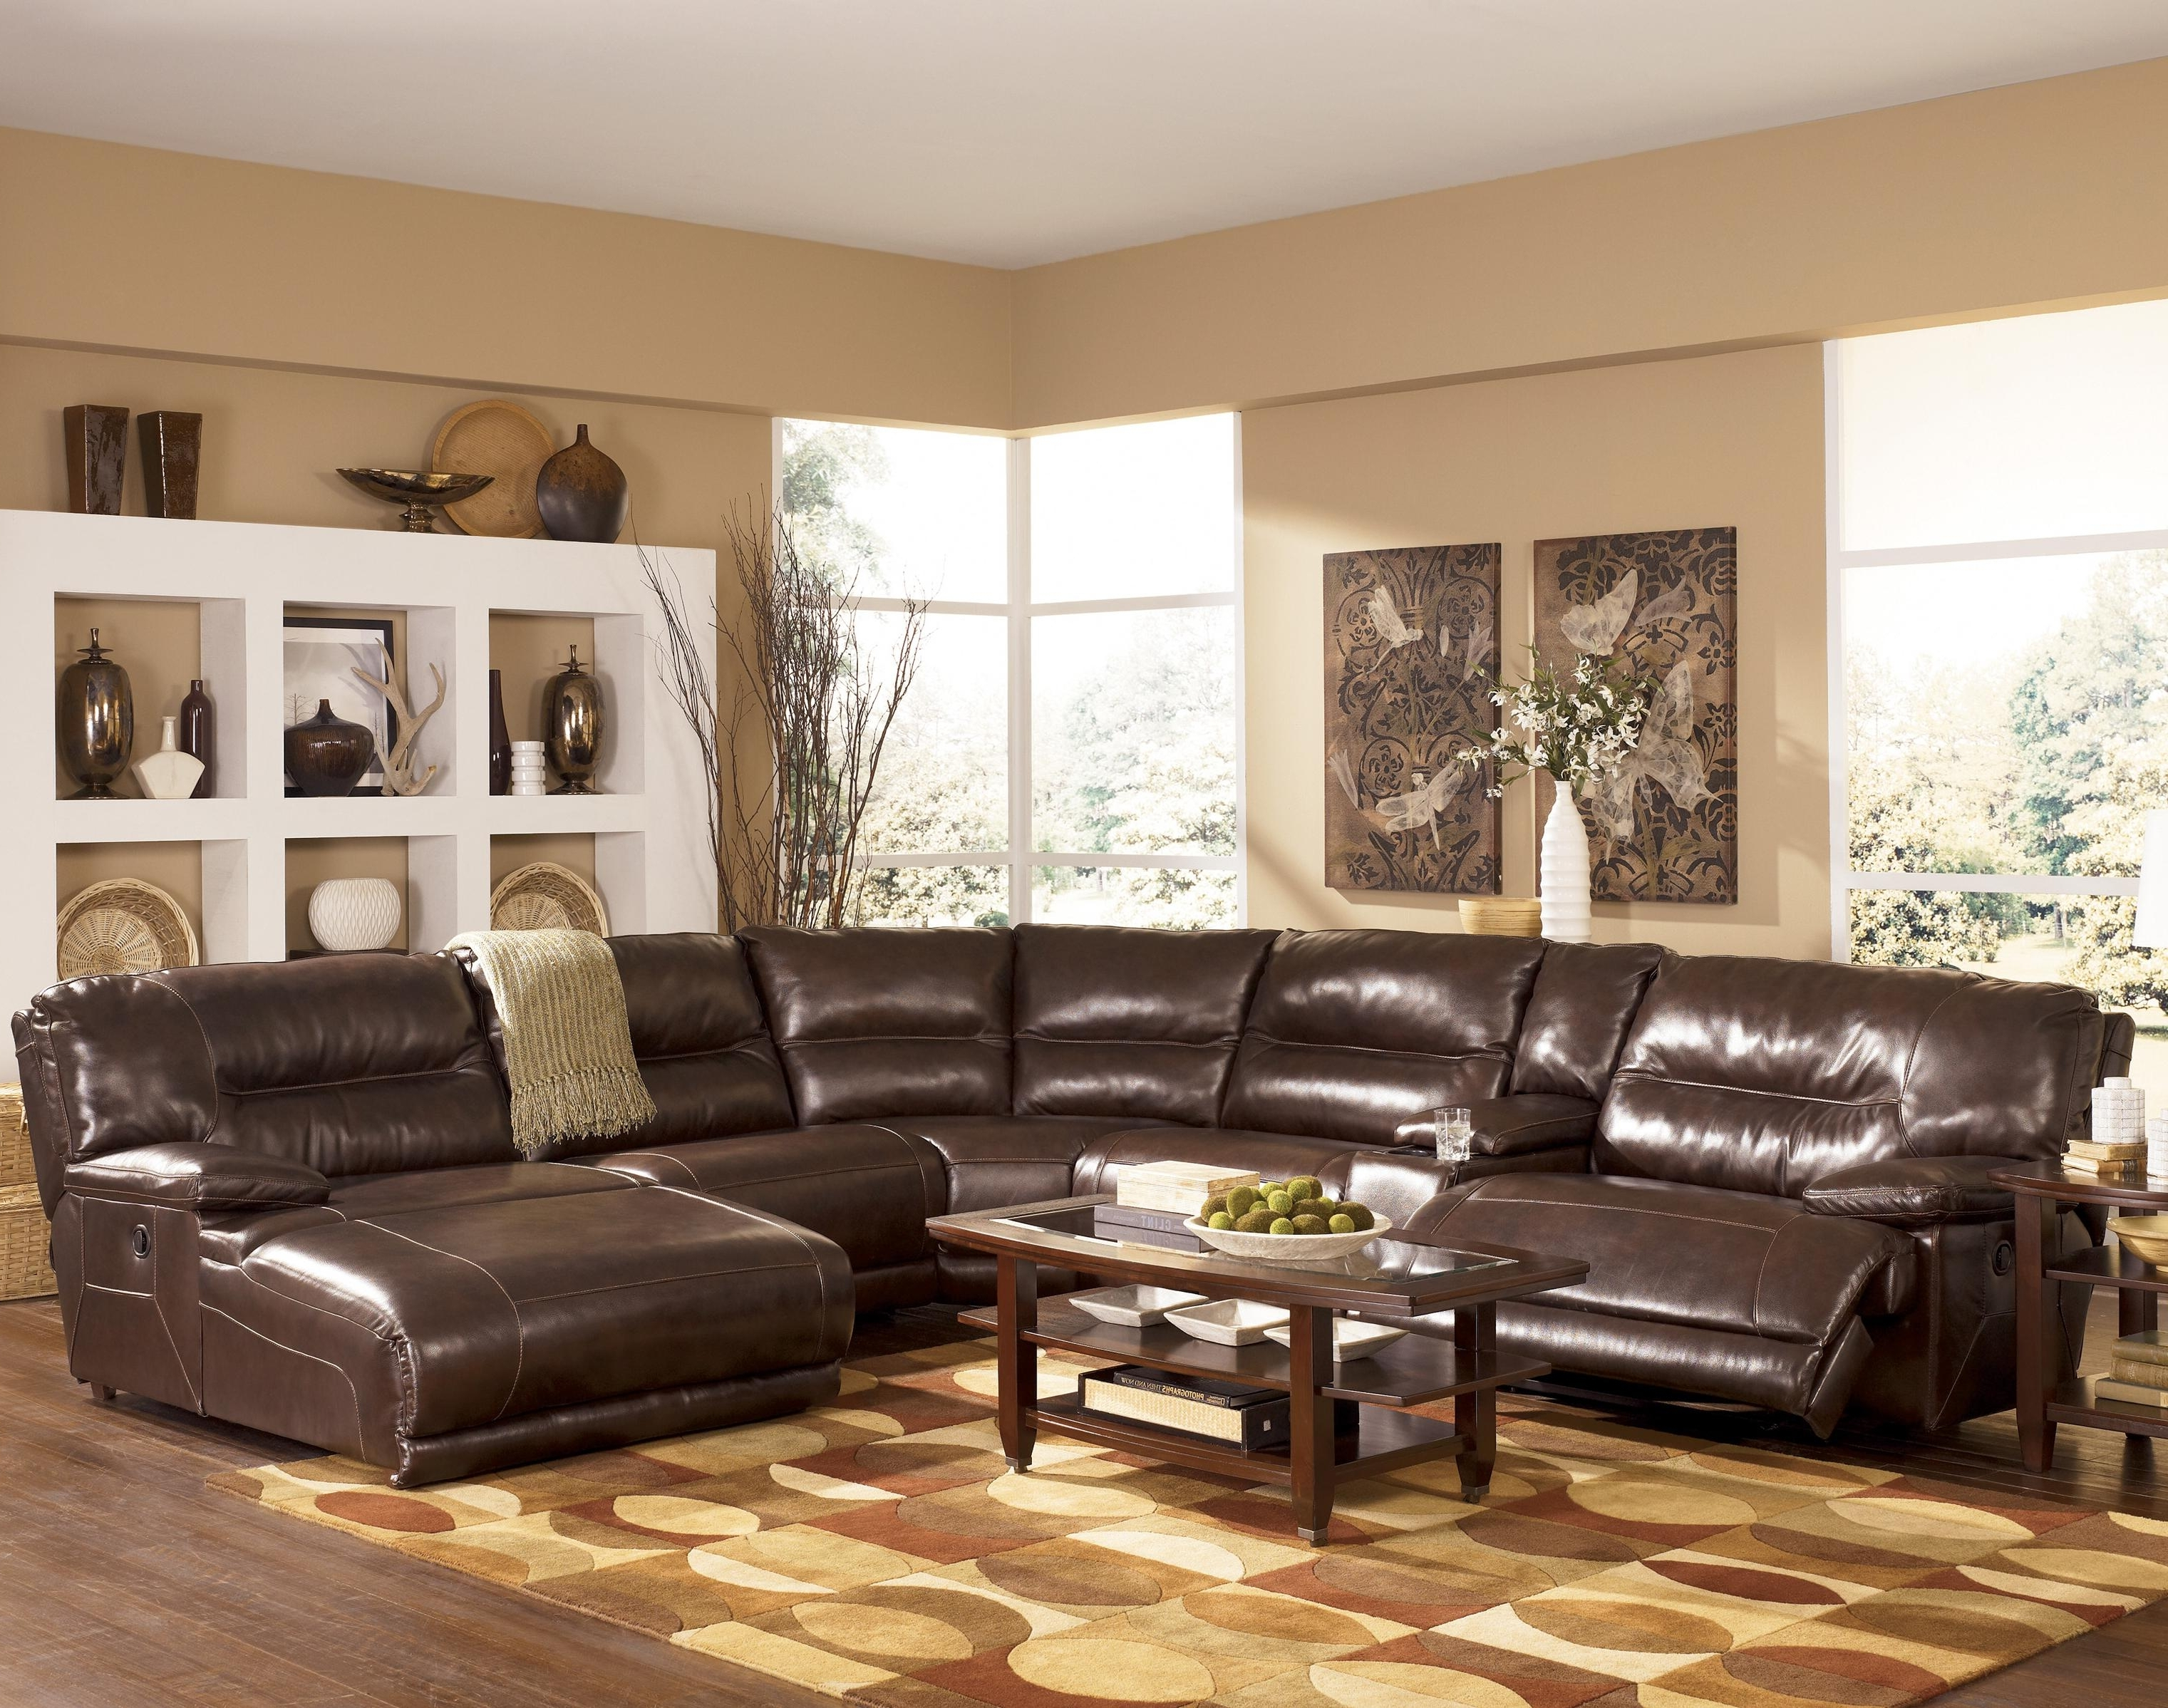 2018 Erie Pa Sectional Sofas Within Signature Designashley Exhilaration – Chocolate Contemporary (View 1 of 15)